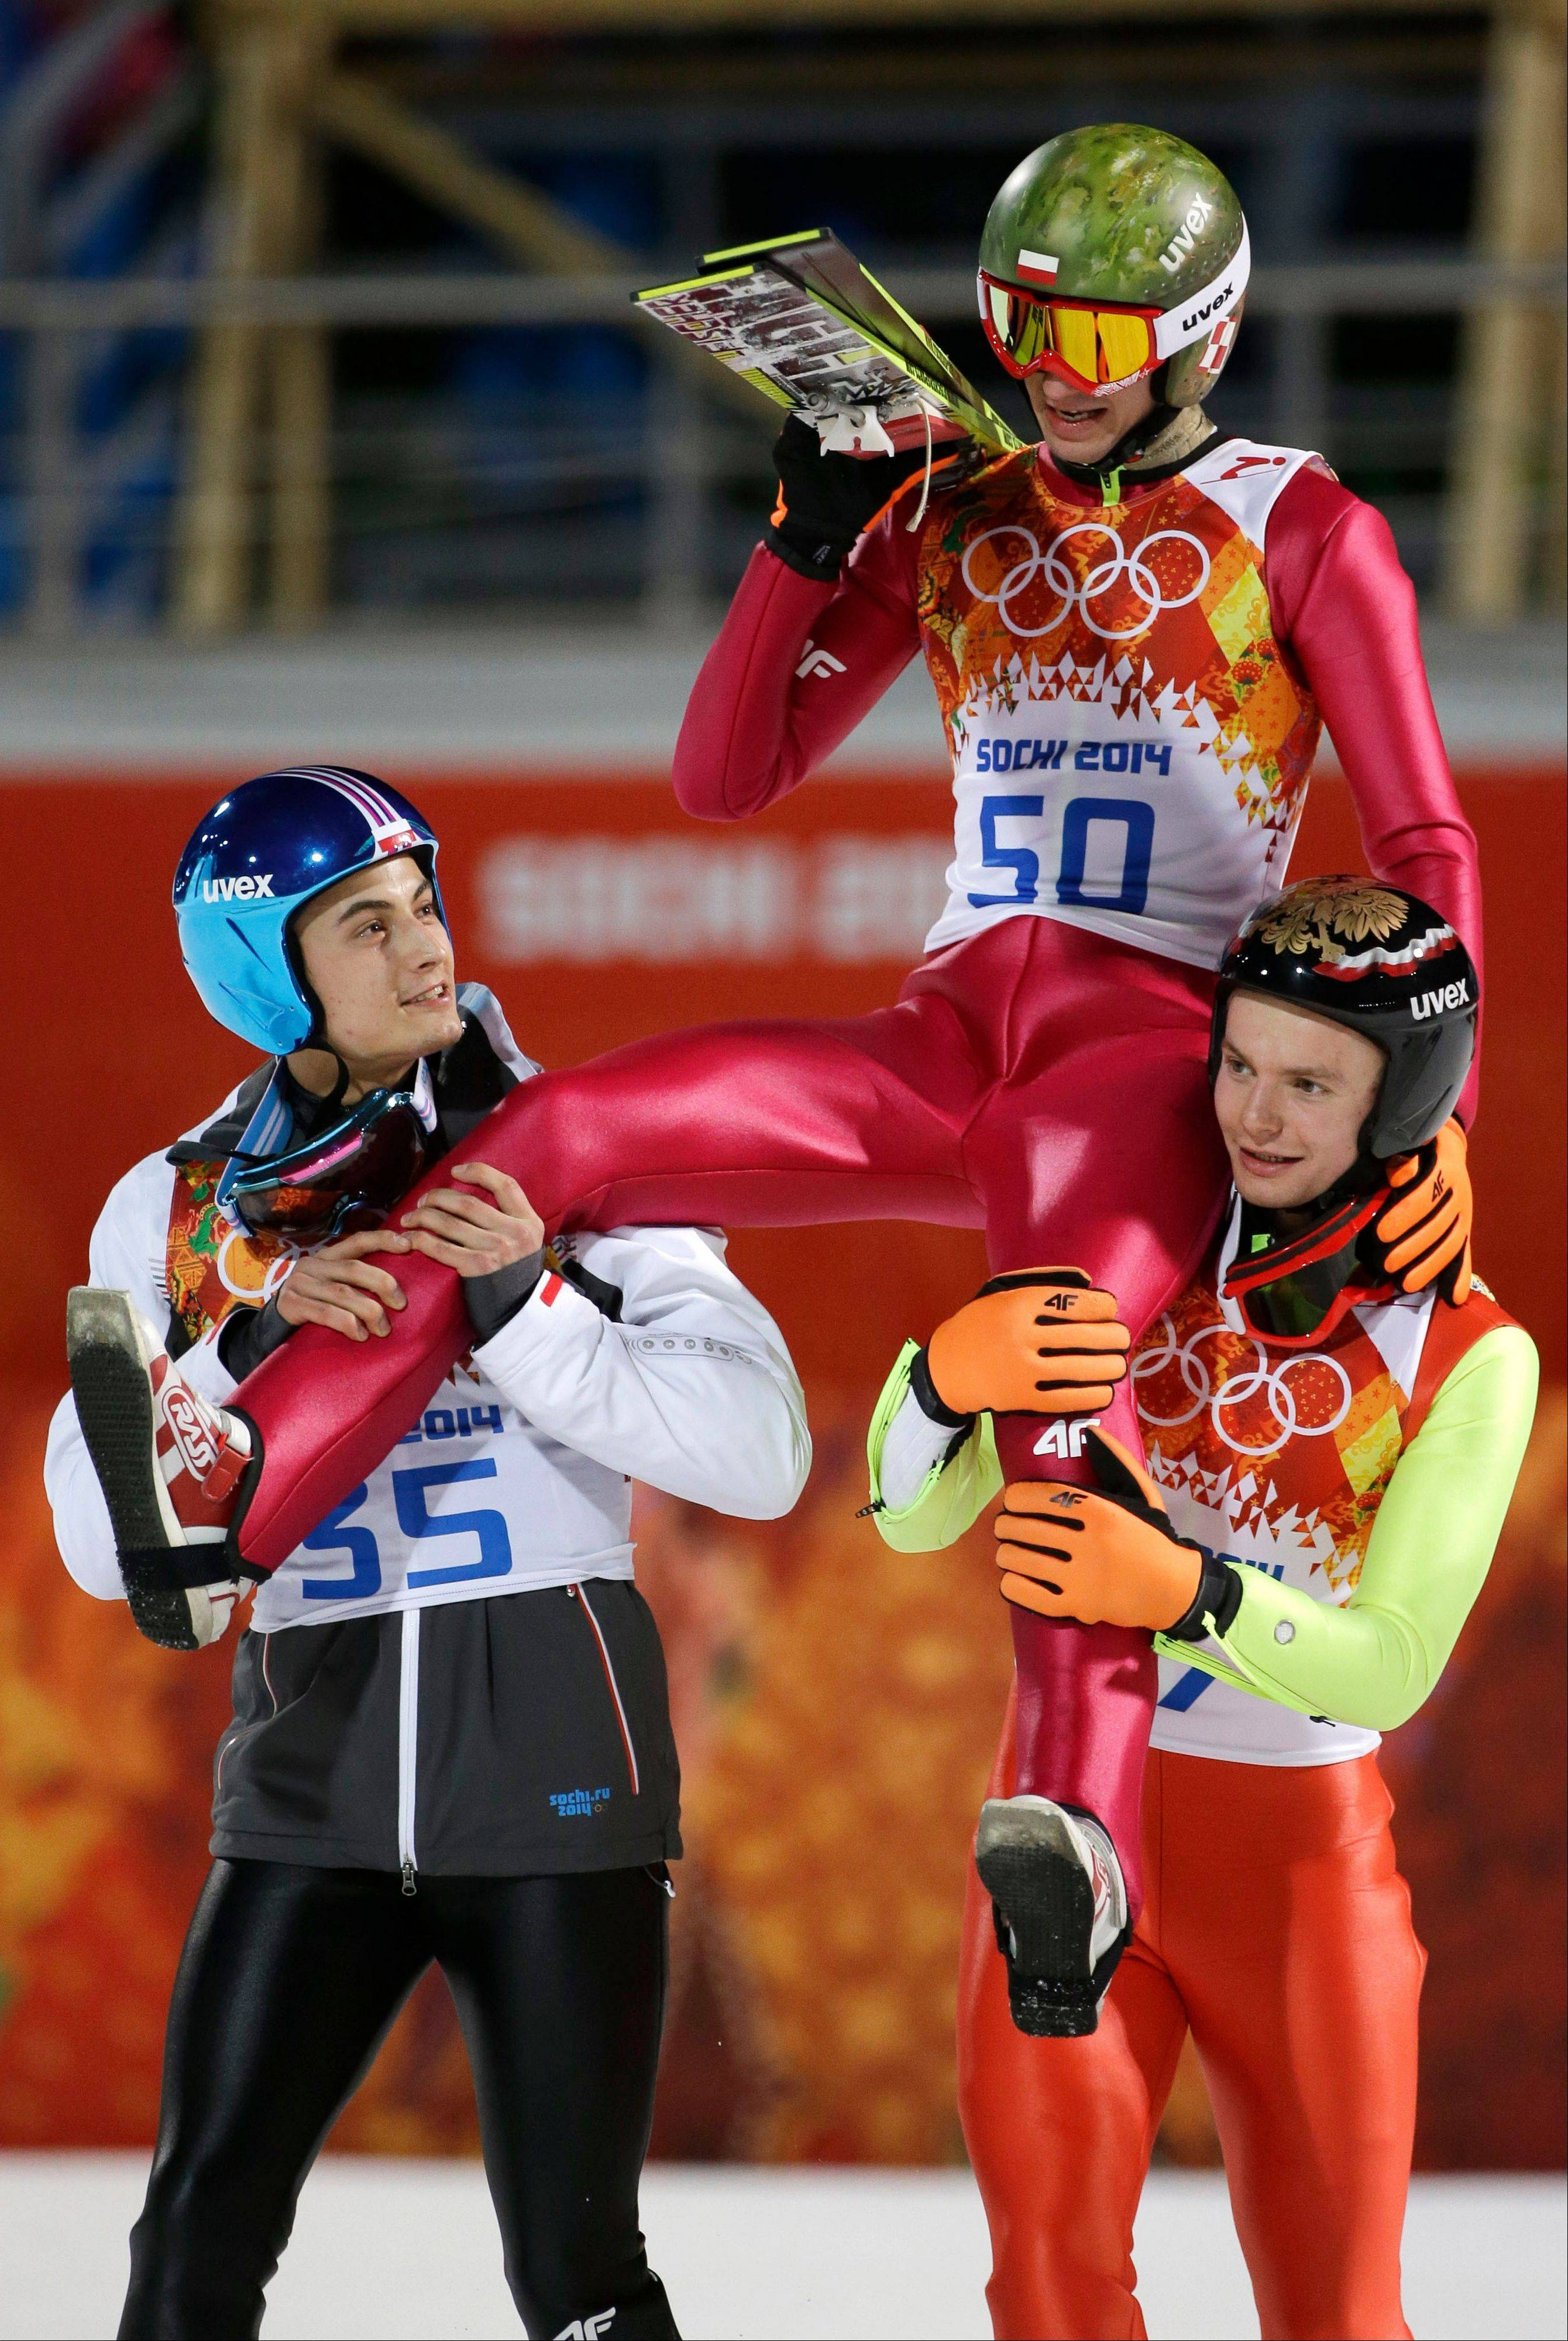 Poland's Kamil Stoch, center, is carried by his teammates Jan Ziobro, right, and Maciej Kot, left, after winning the gold in the men's normal hill ski jumping final at the 2014 Winter Olympics, Sunday, Feb. 9, 2014, in Krasnaya Polyana, Russia.